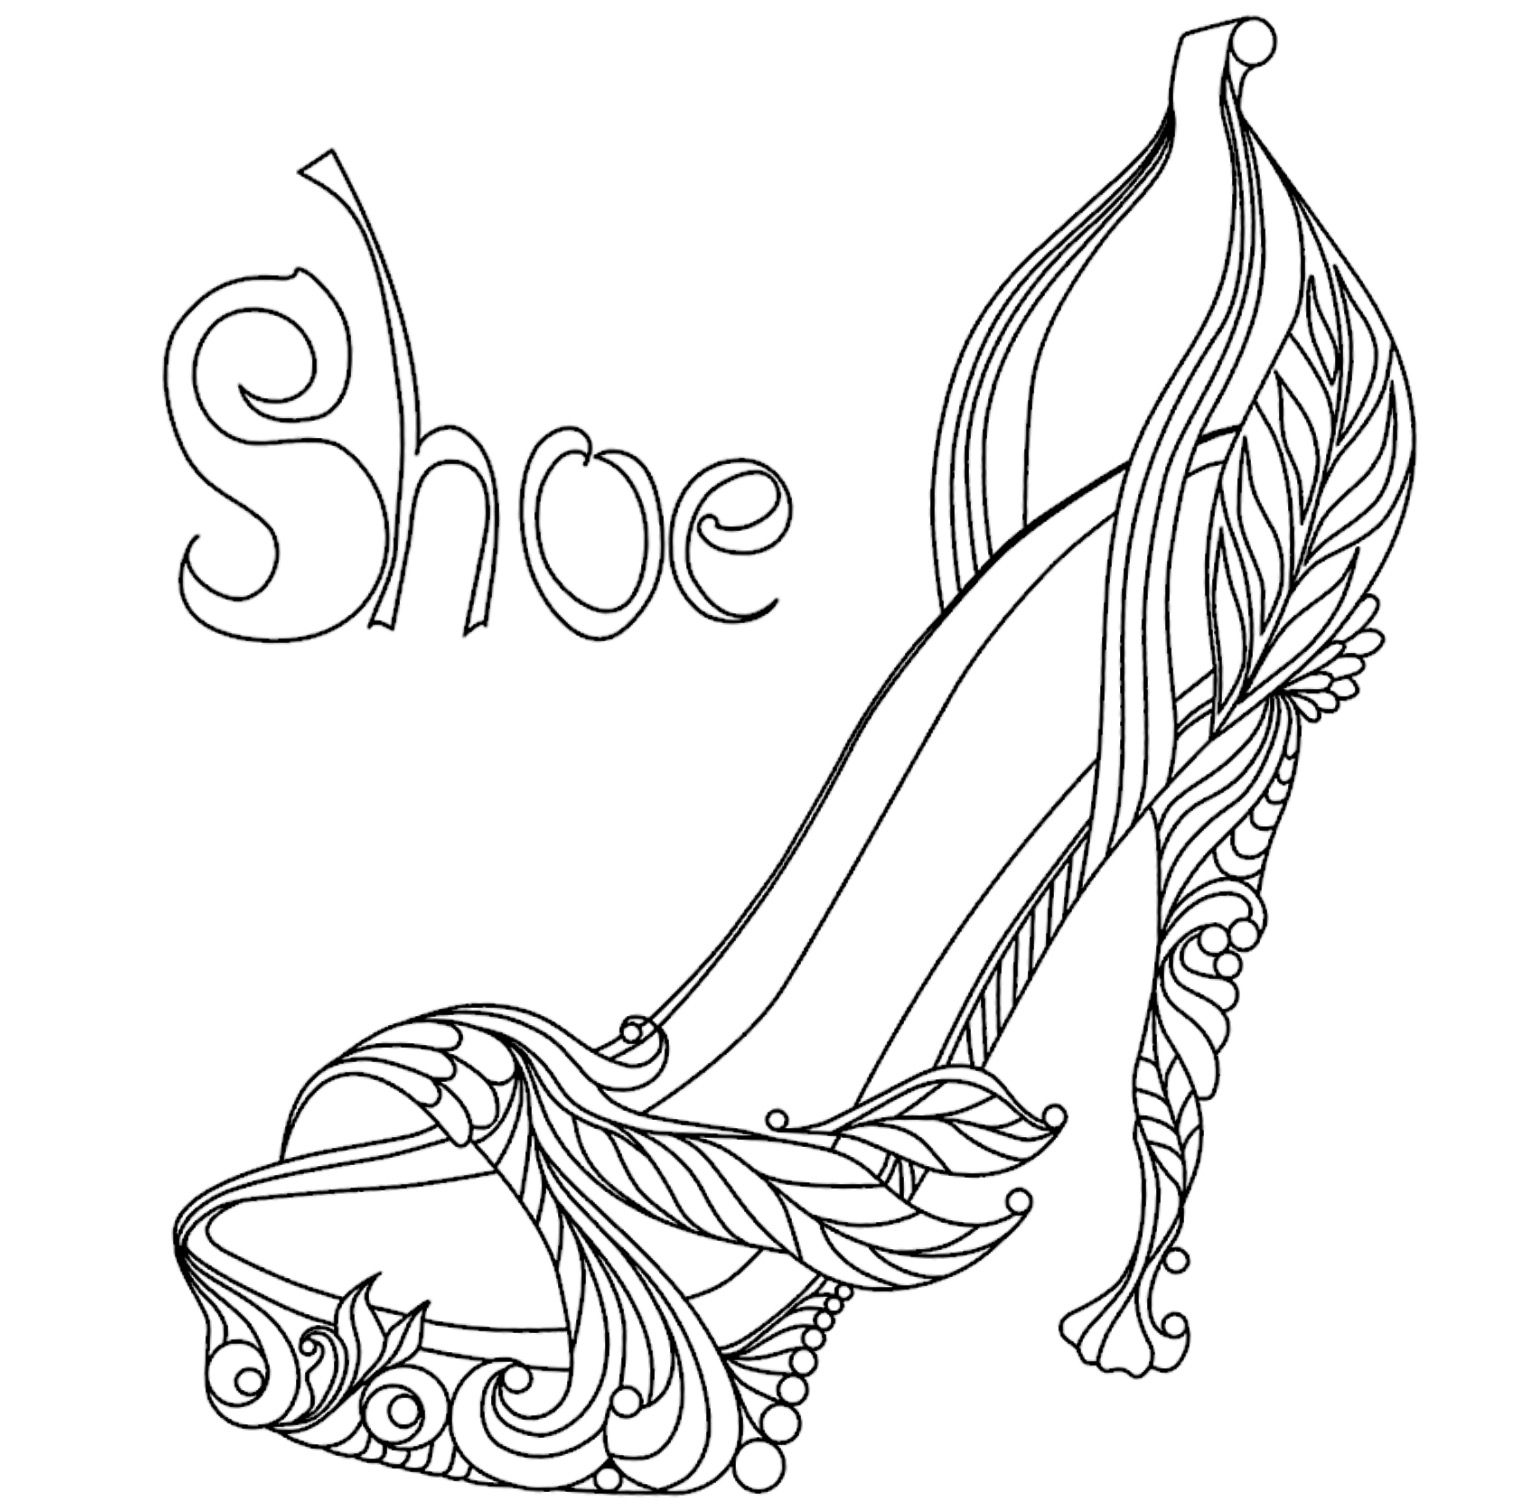 shoes pictures to color basketball shoes coloring pages to printable colouring to pictures shoes color